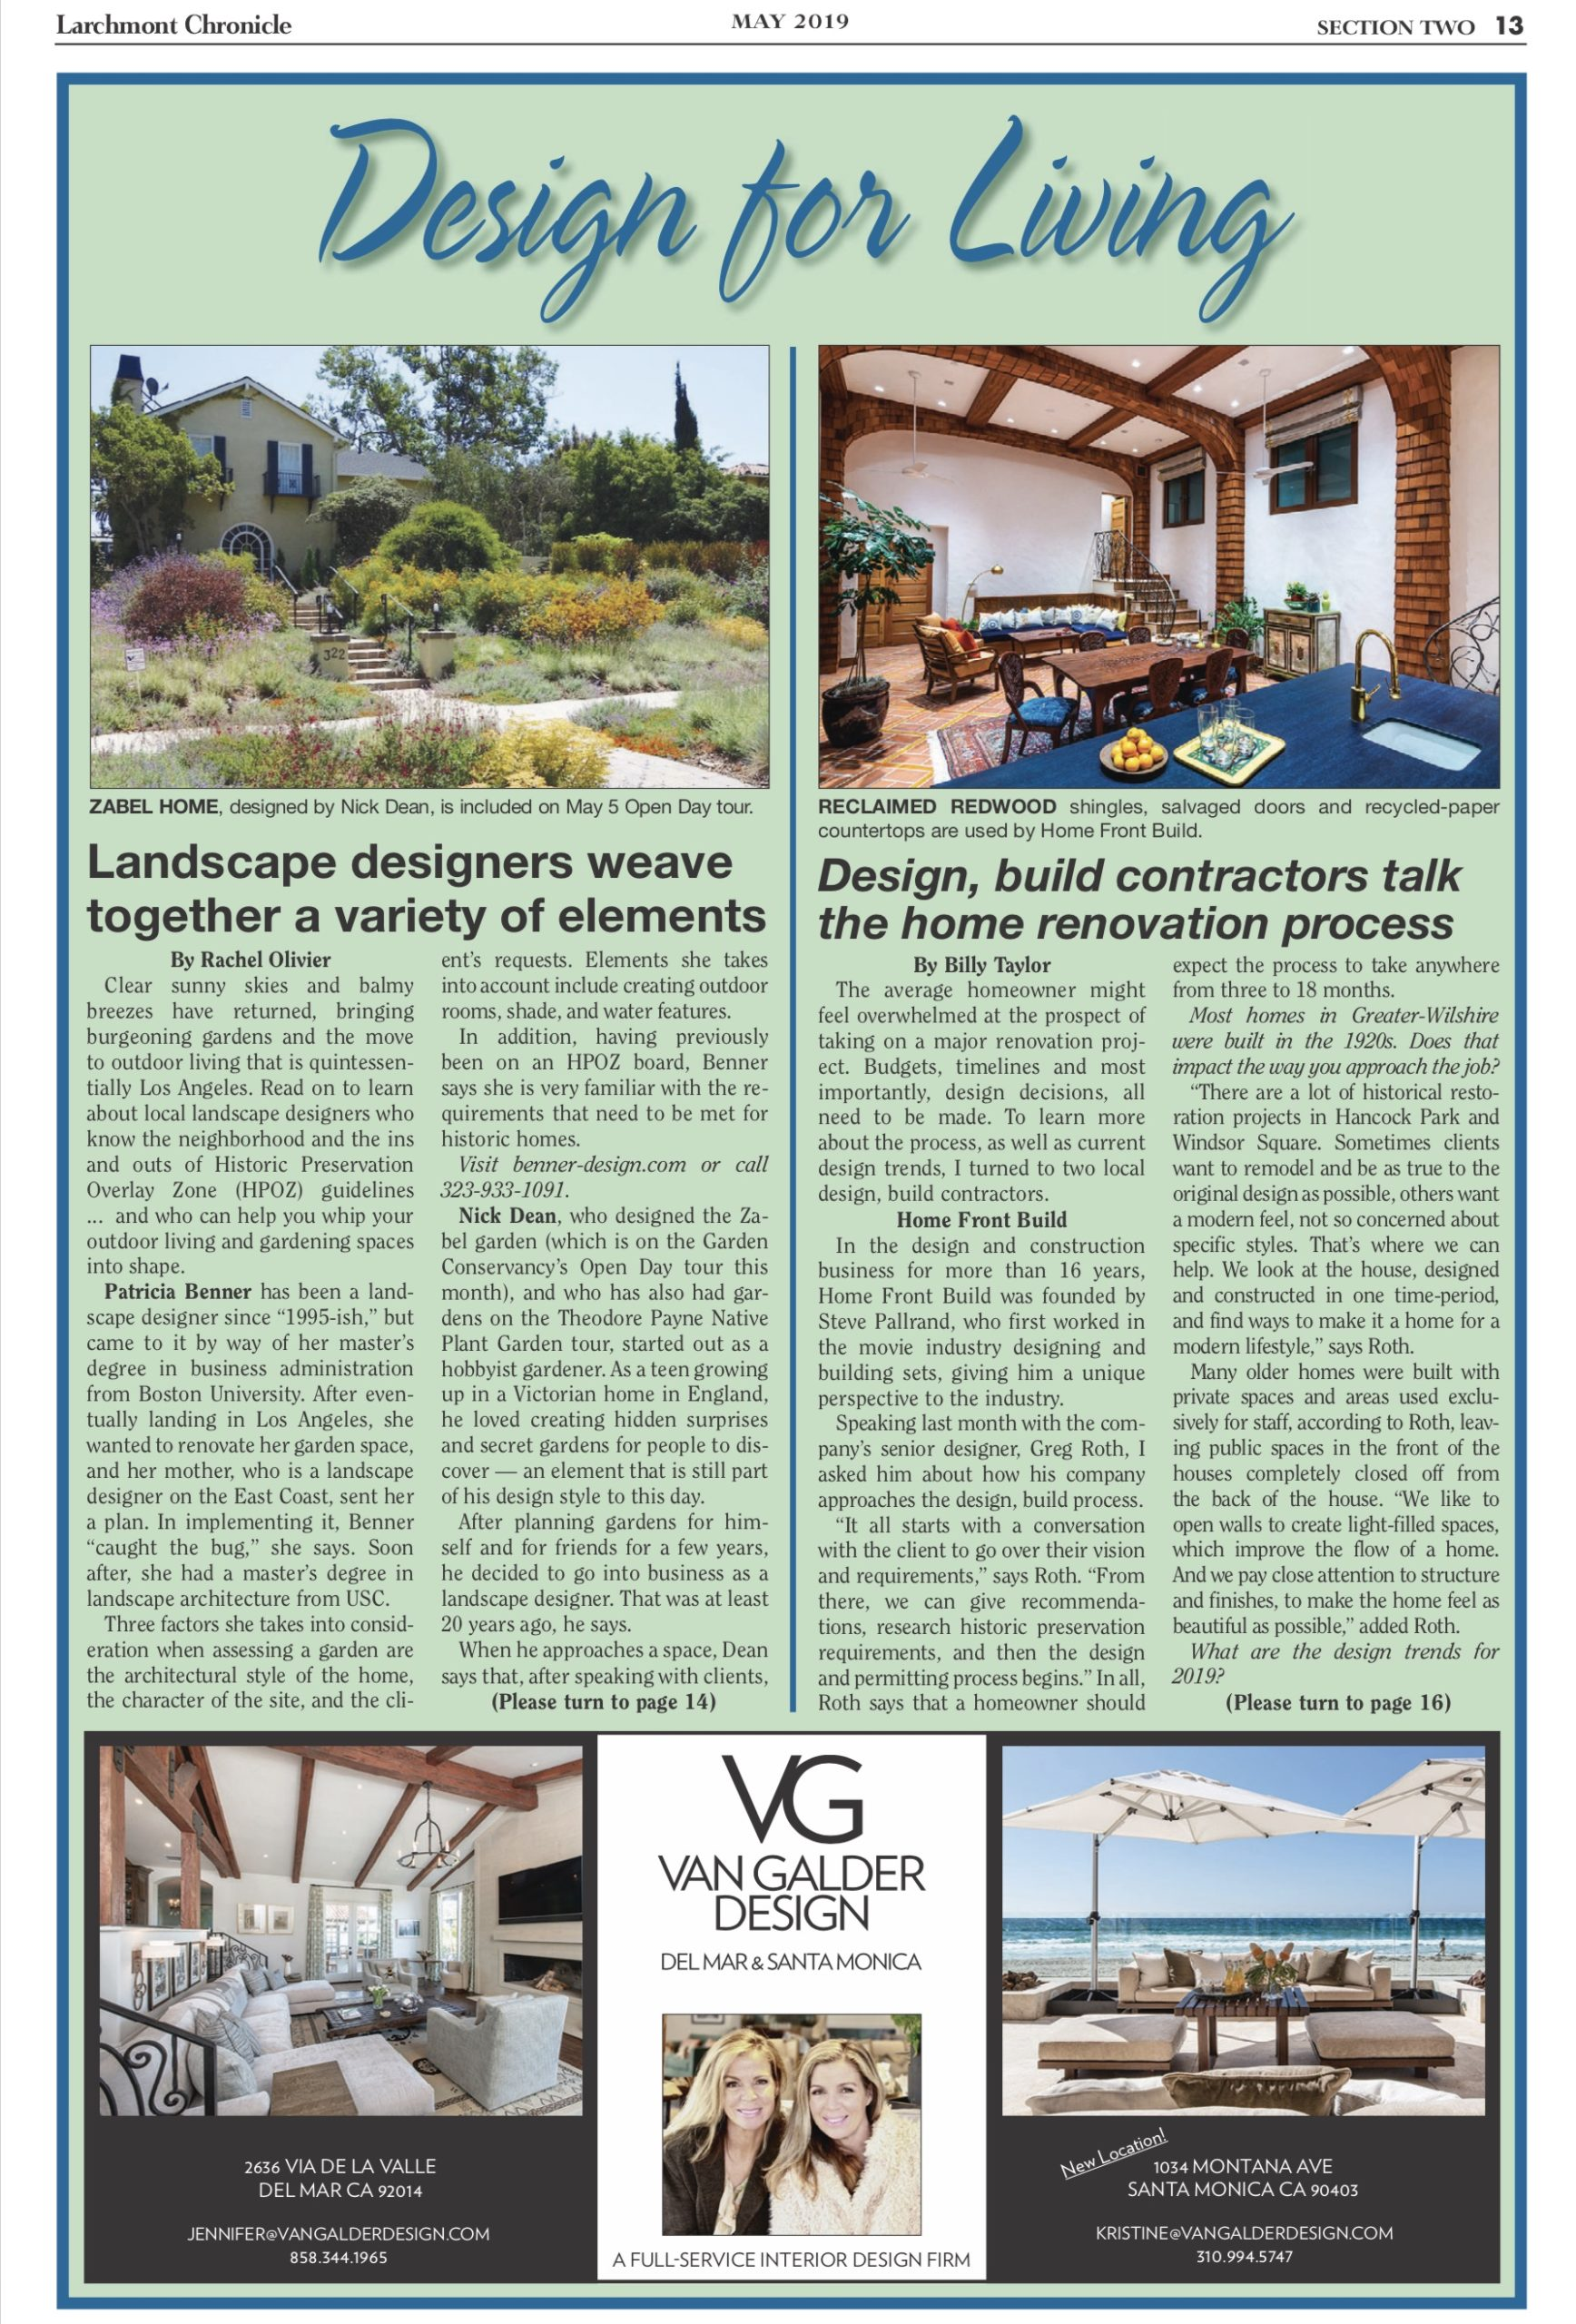 Click below to read the 2019 Design for Living